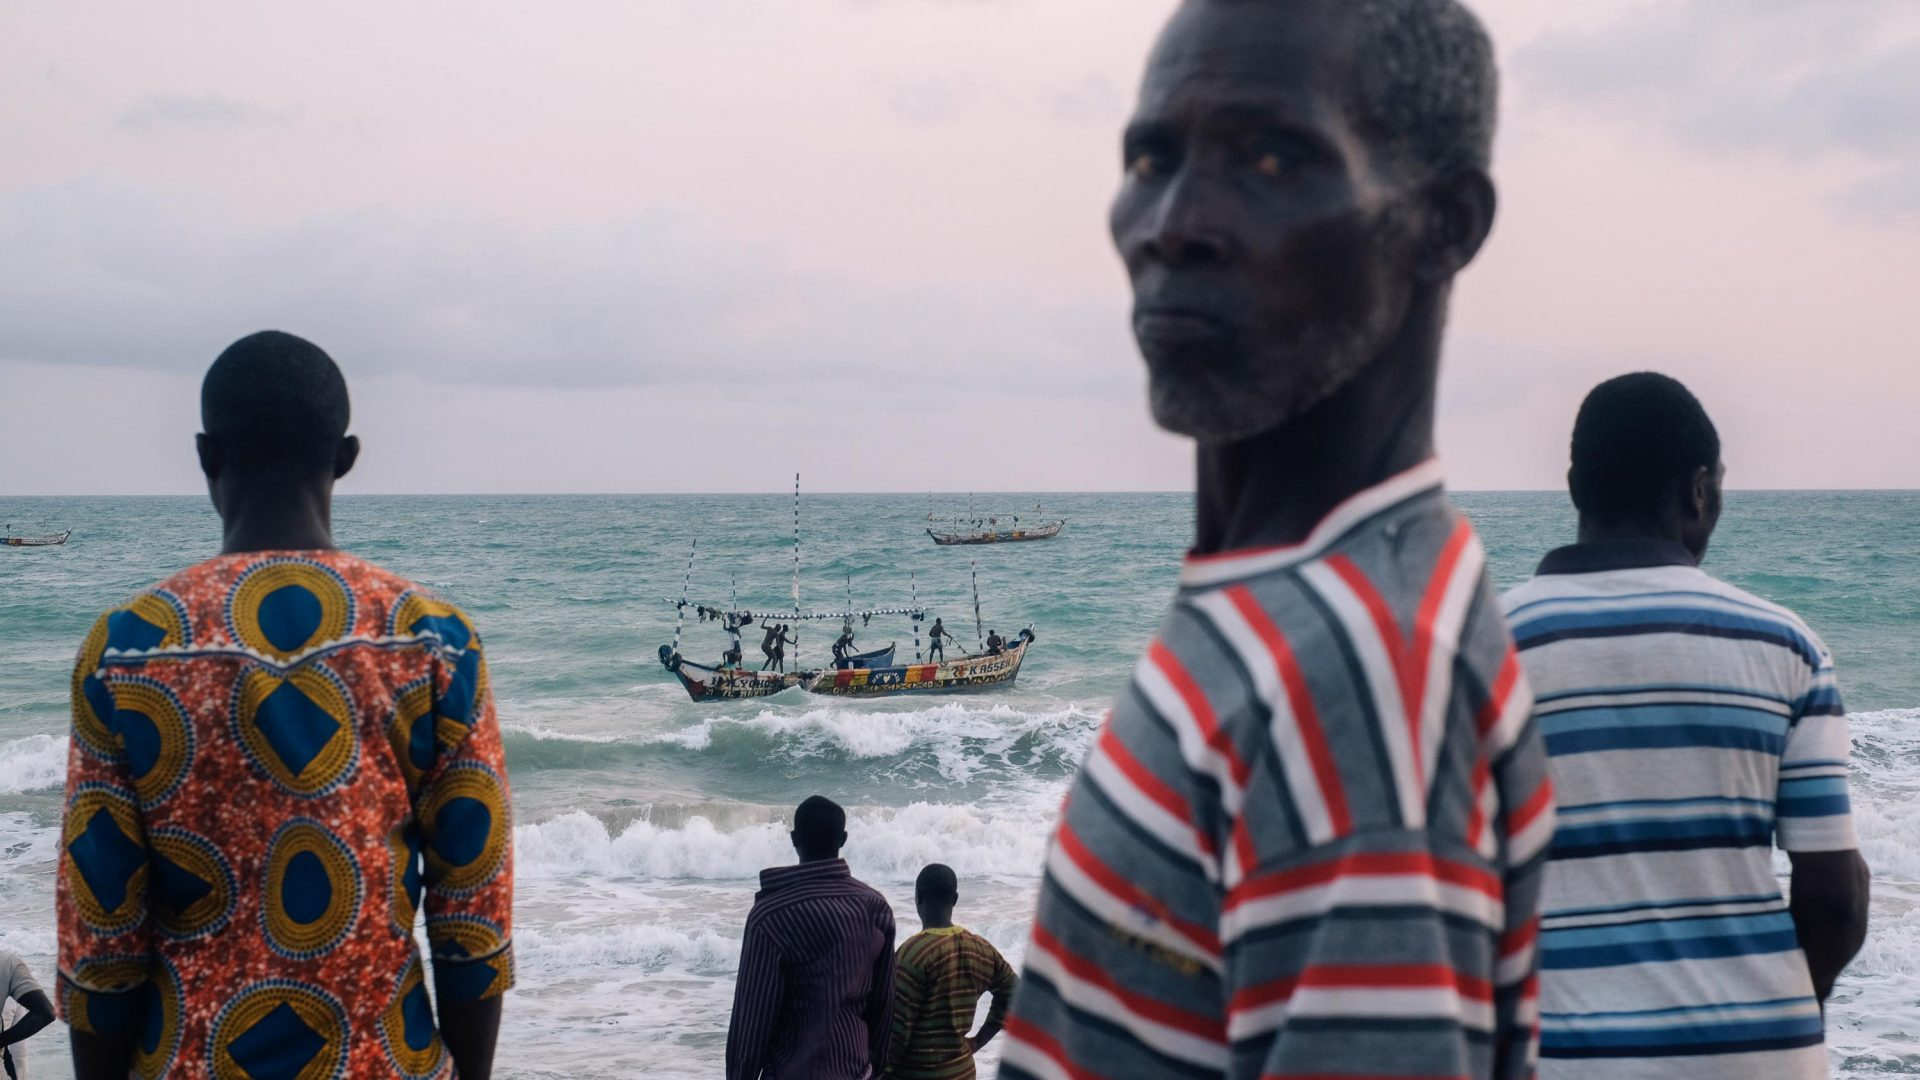 In photos: Beyond the surf, Ghana's coast is a kaleidoscopic dream